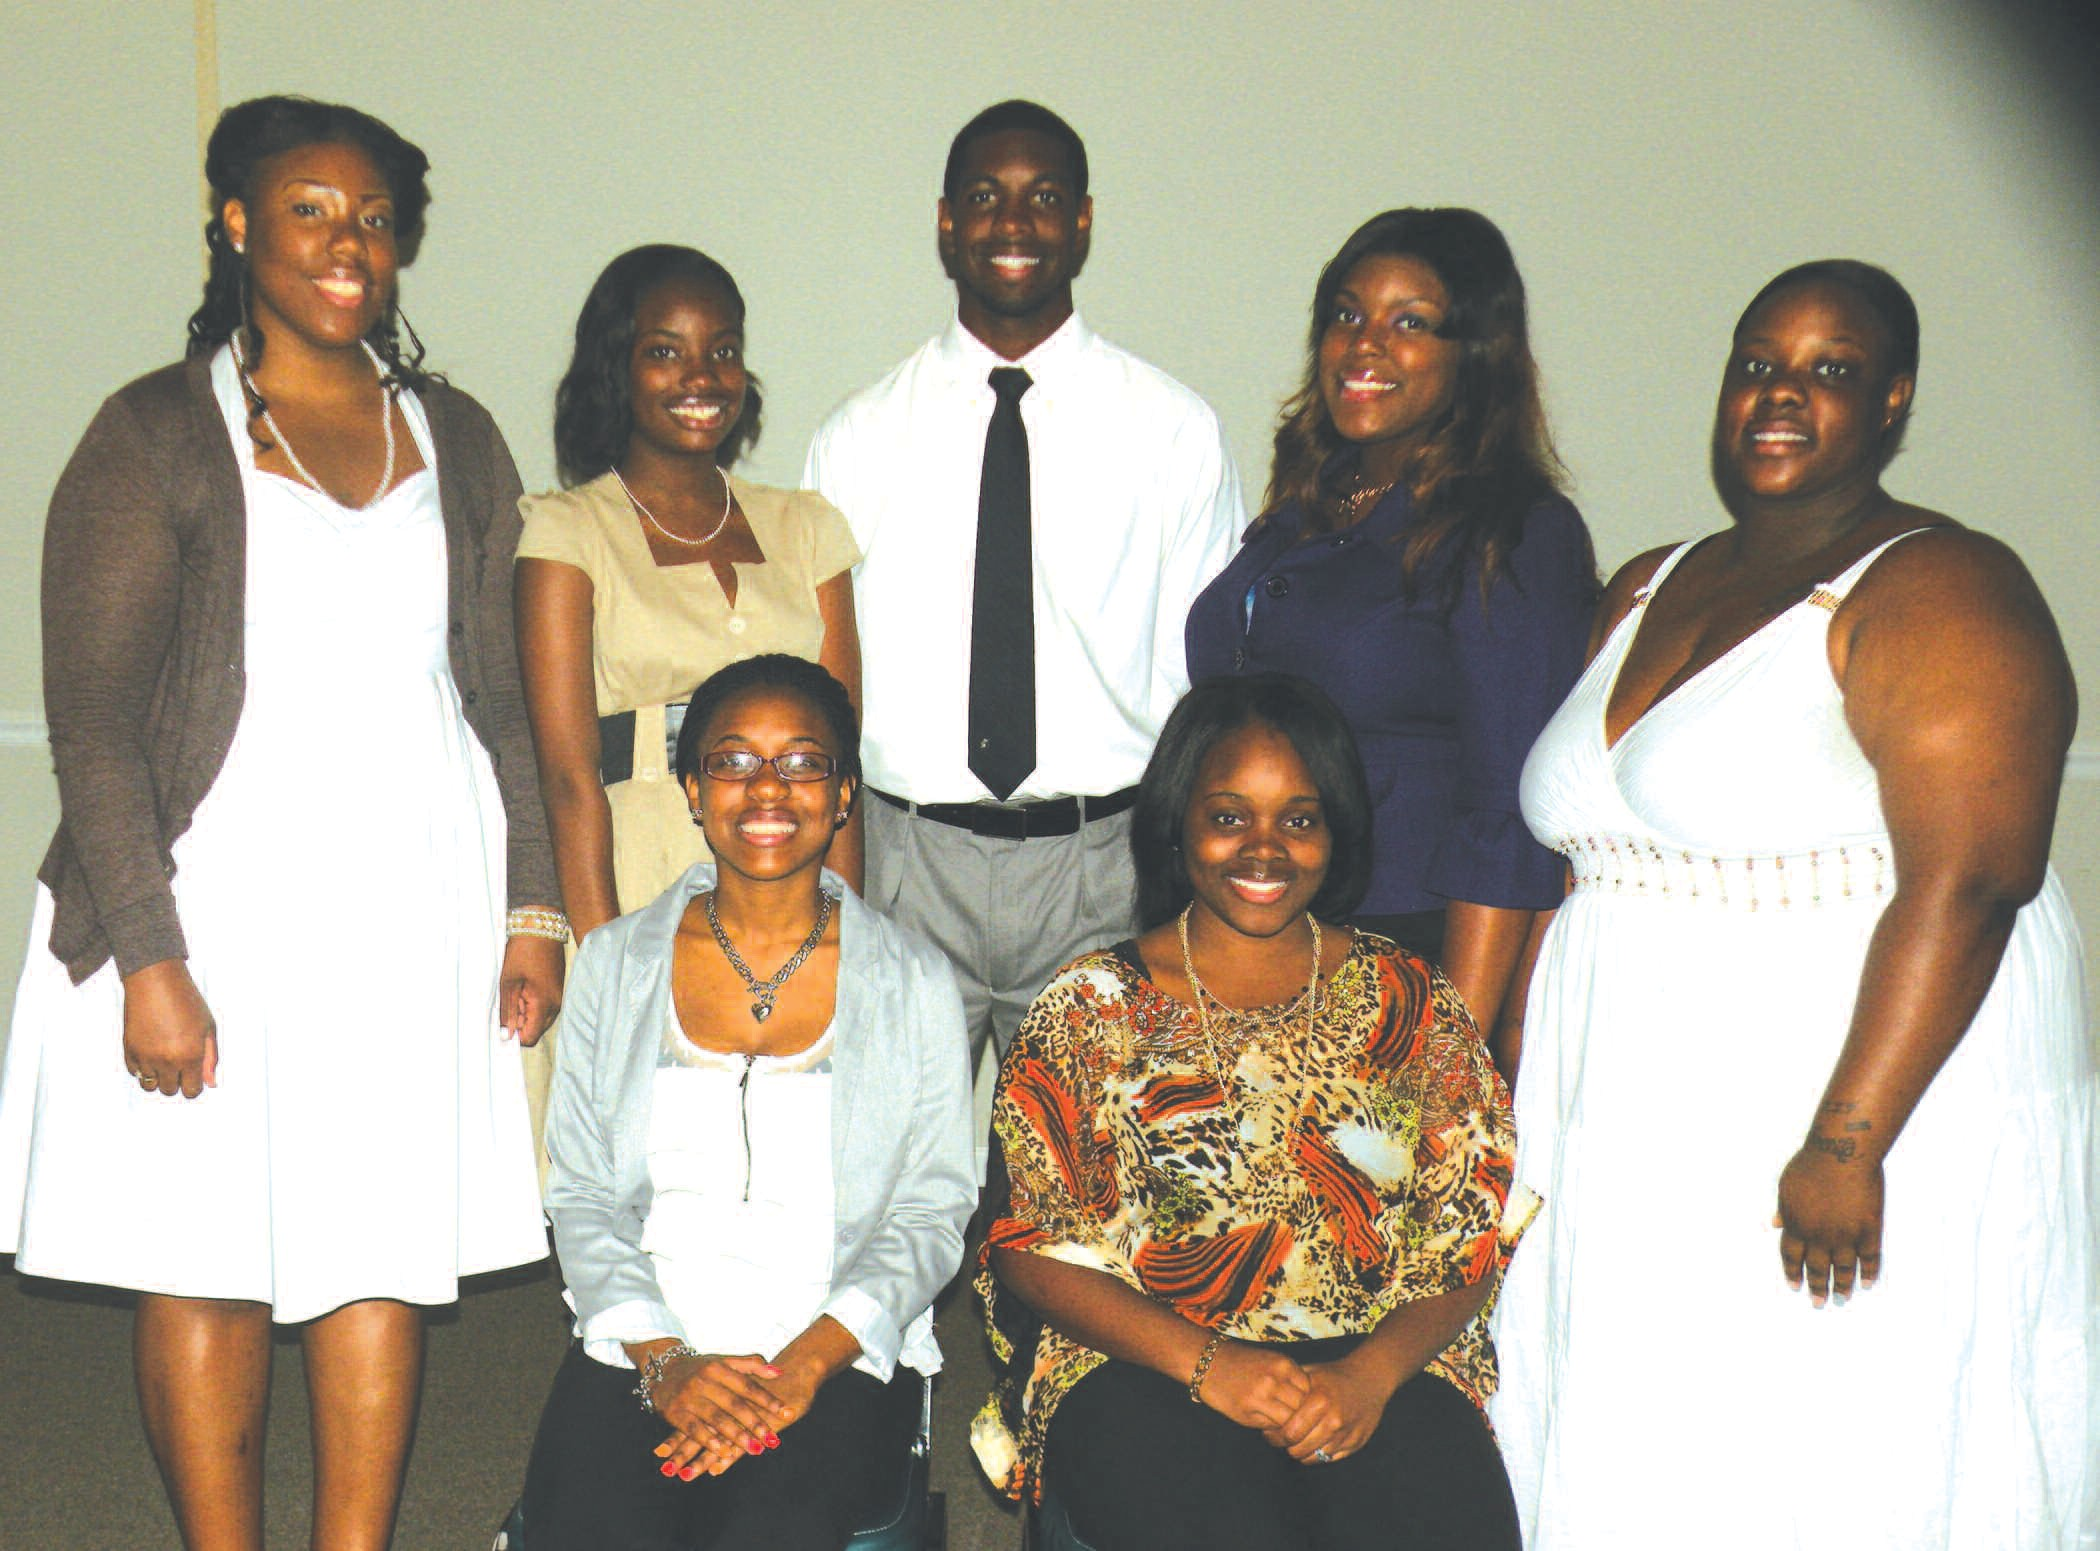 (Standing L-R): Shudai Henderson, Destiny Ruffin, Melvin Thomas, Shelby Harris, Breana Favors, (seated) Brikeishia Jackson and Yolanda Waller